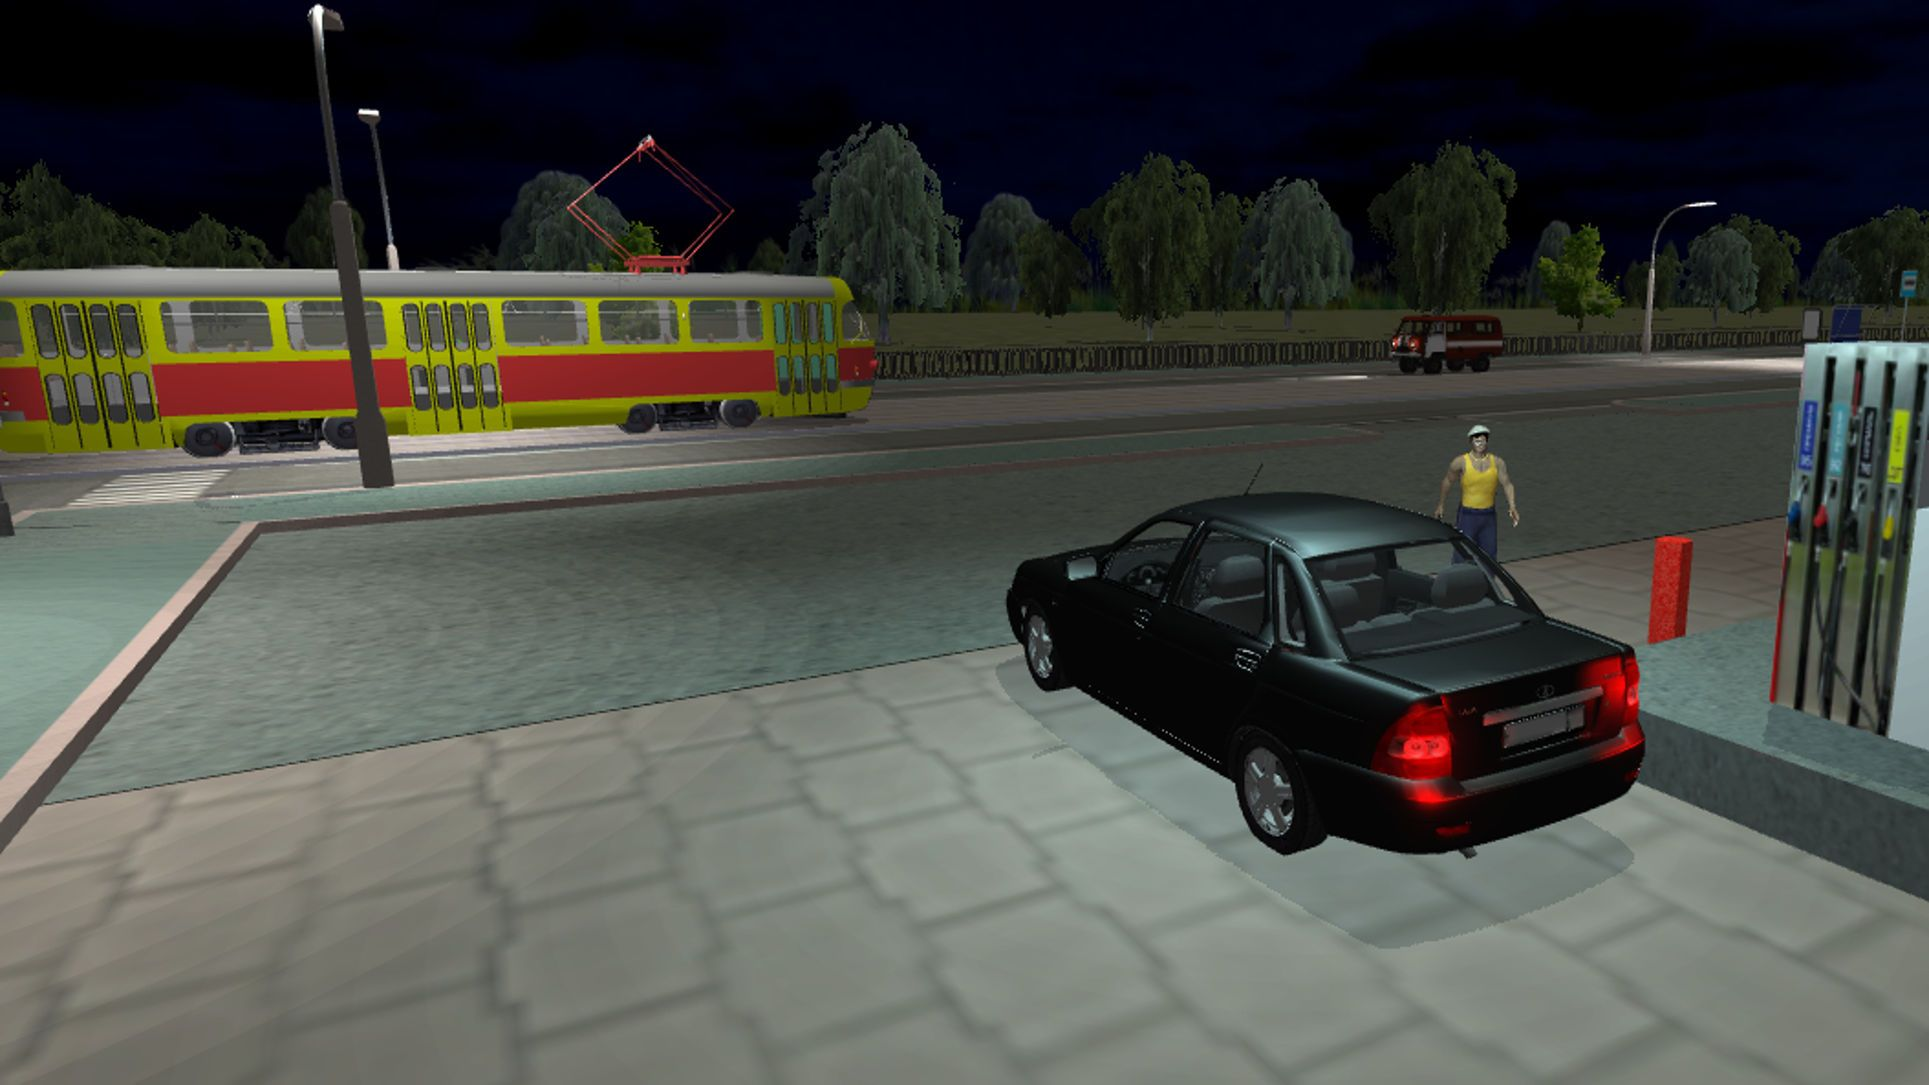 Real City Russian Car Driver Games Andreev Simulation Racing Super Car Racing Car And Driver Car